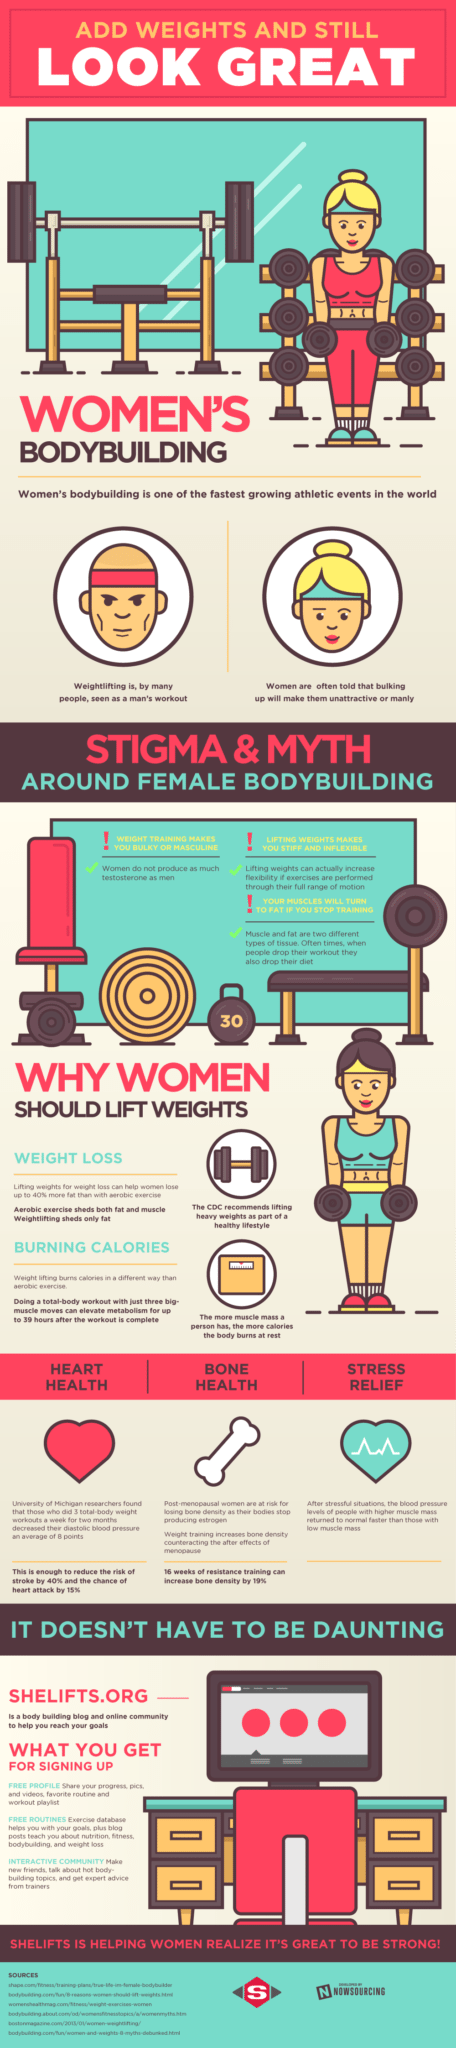 womens-bodybuilding